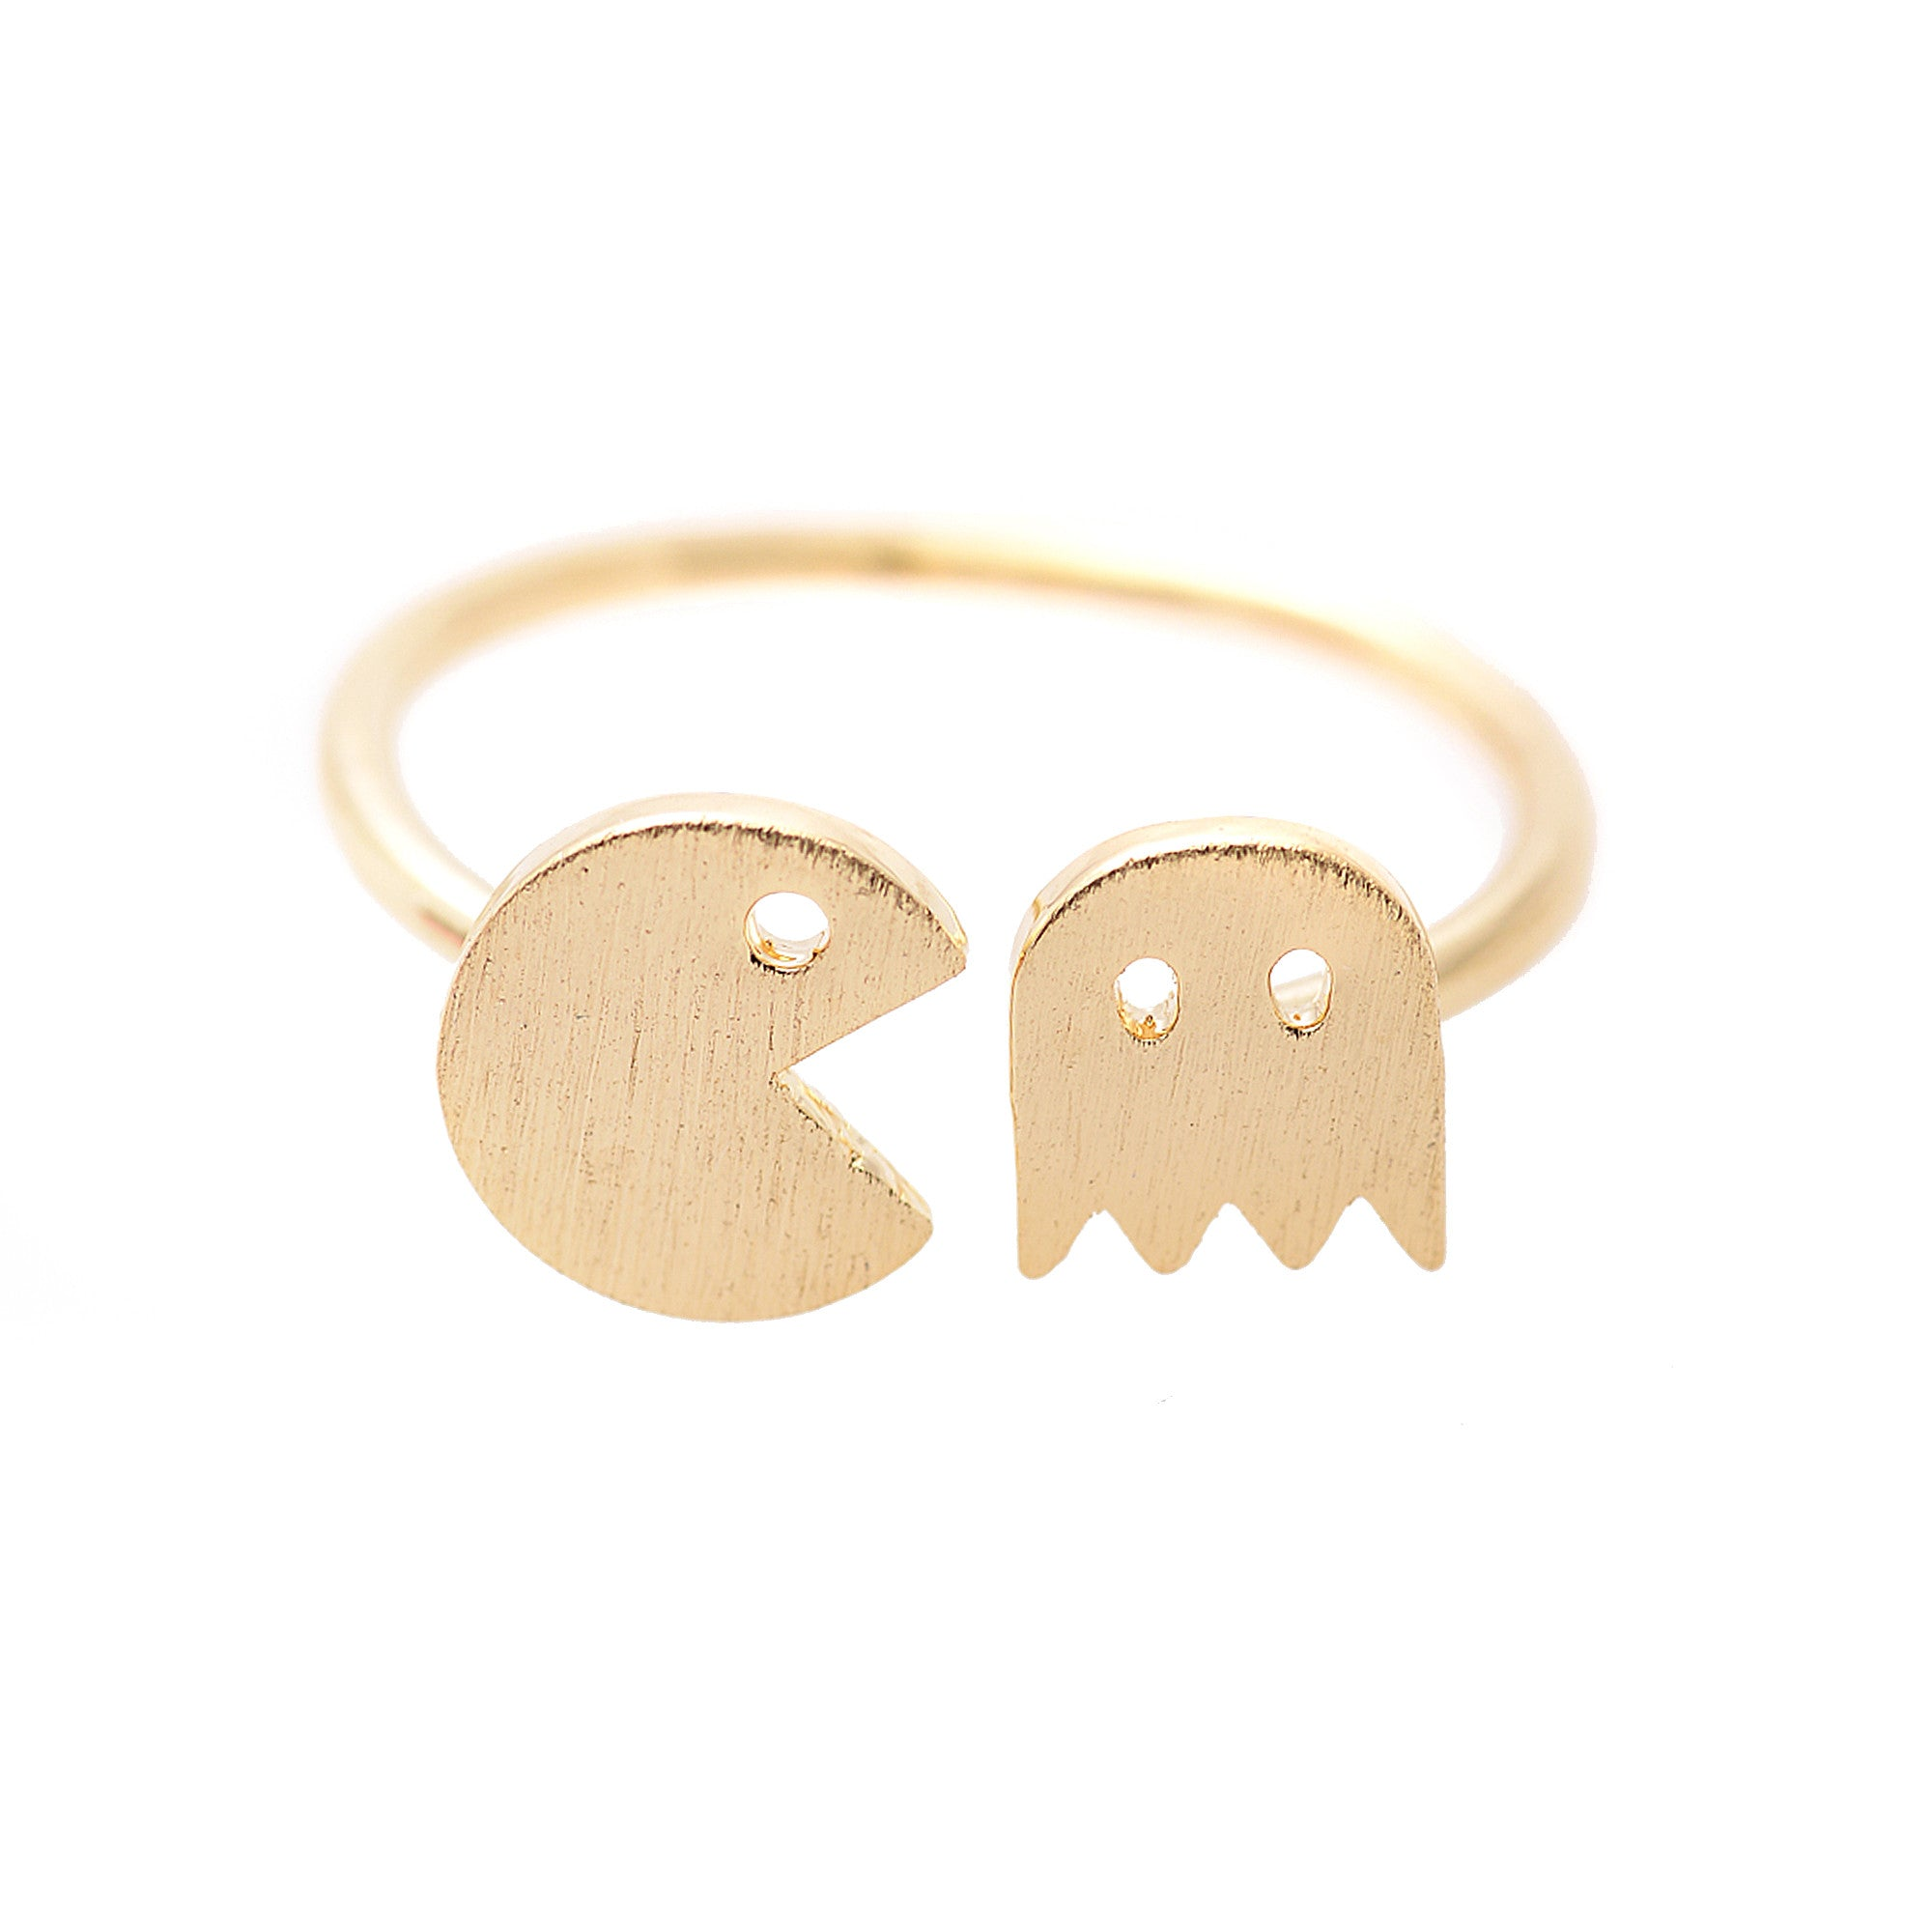 peak ller collection collections kller k brass earrings ghost products